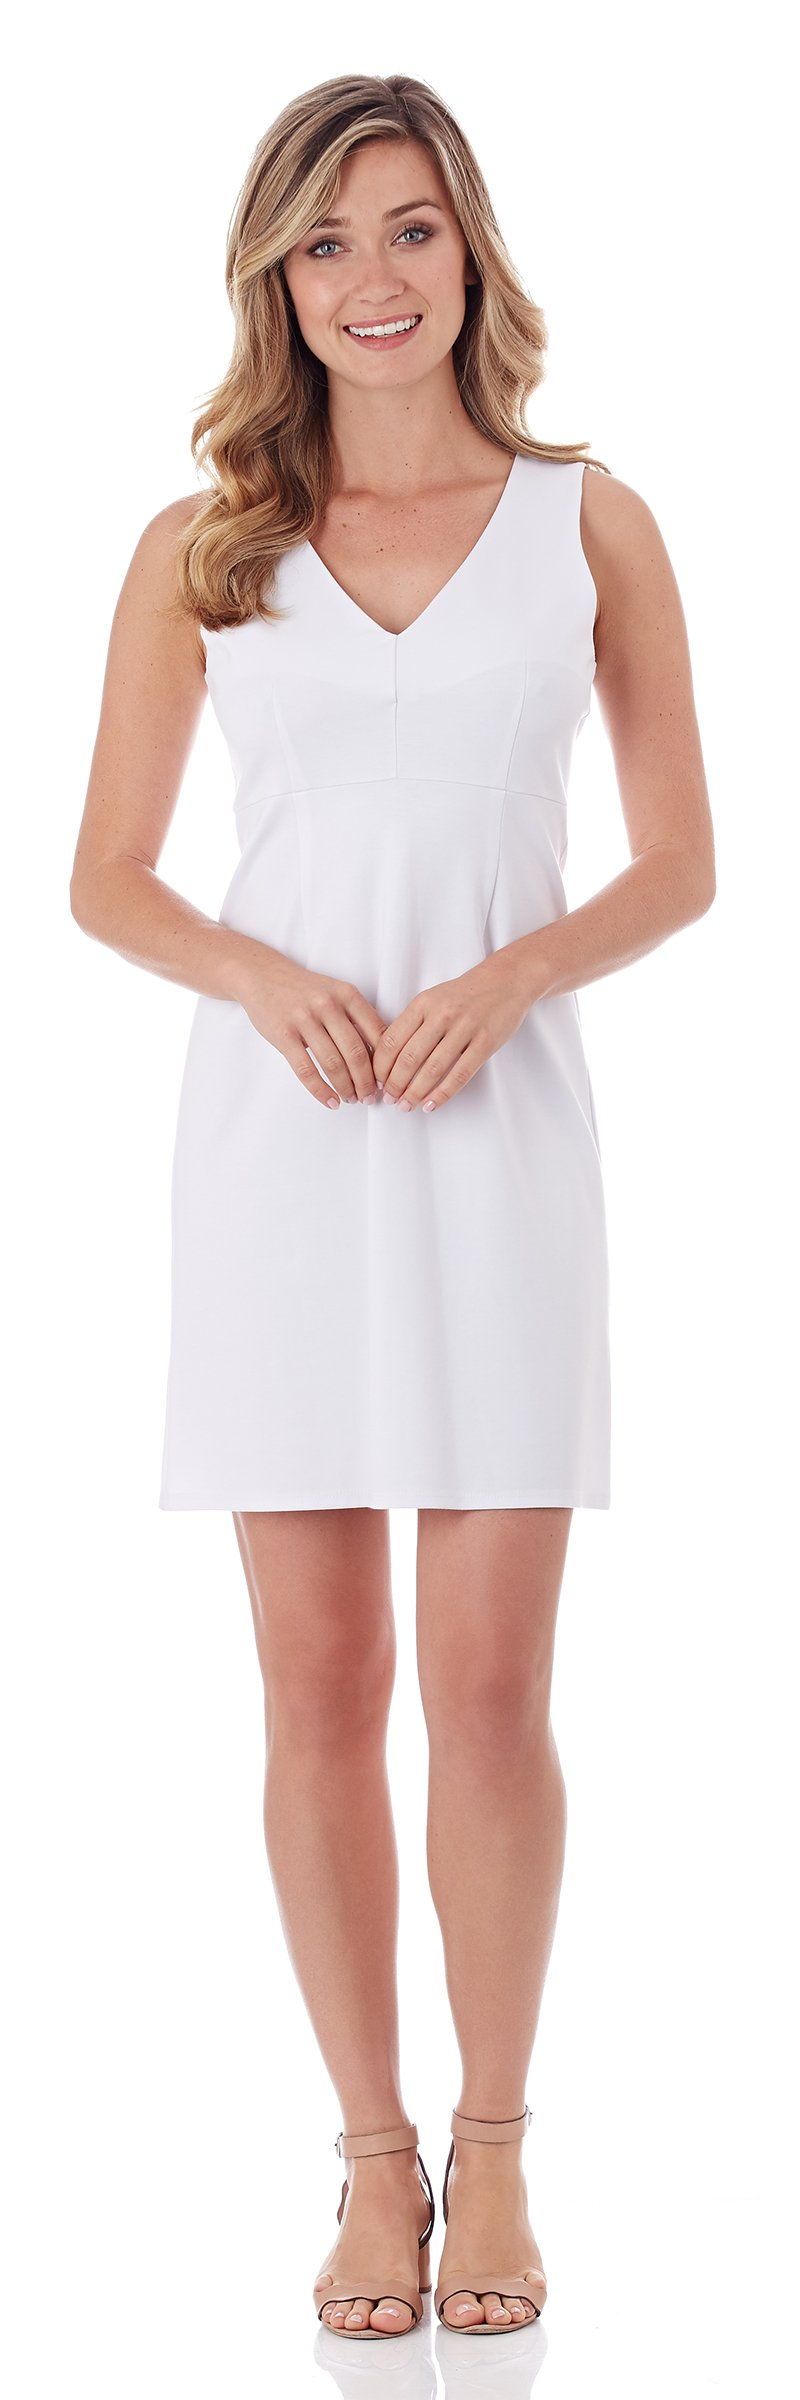 Jude Connally Naomi Dress in White